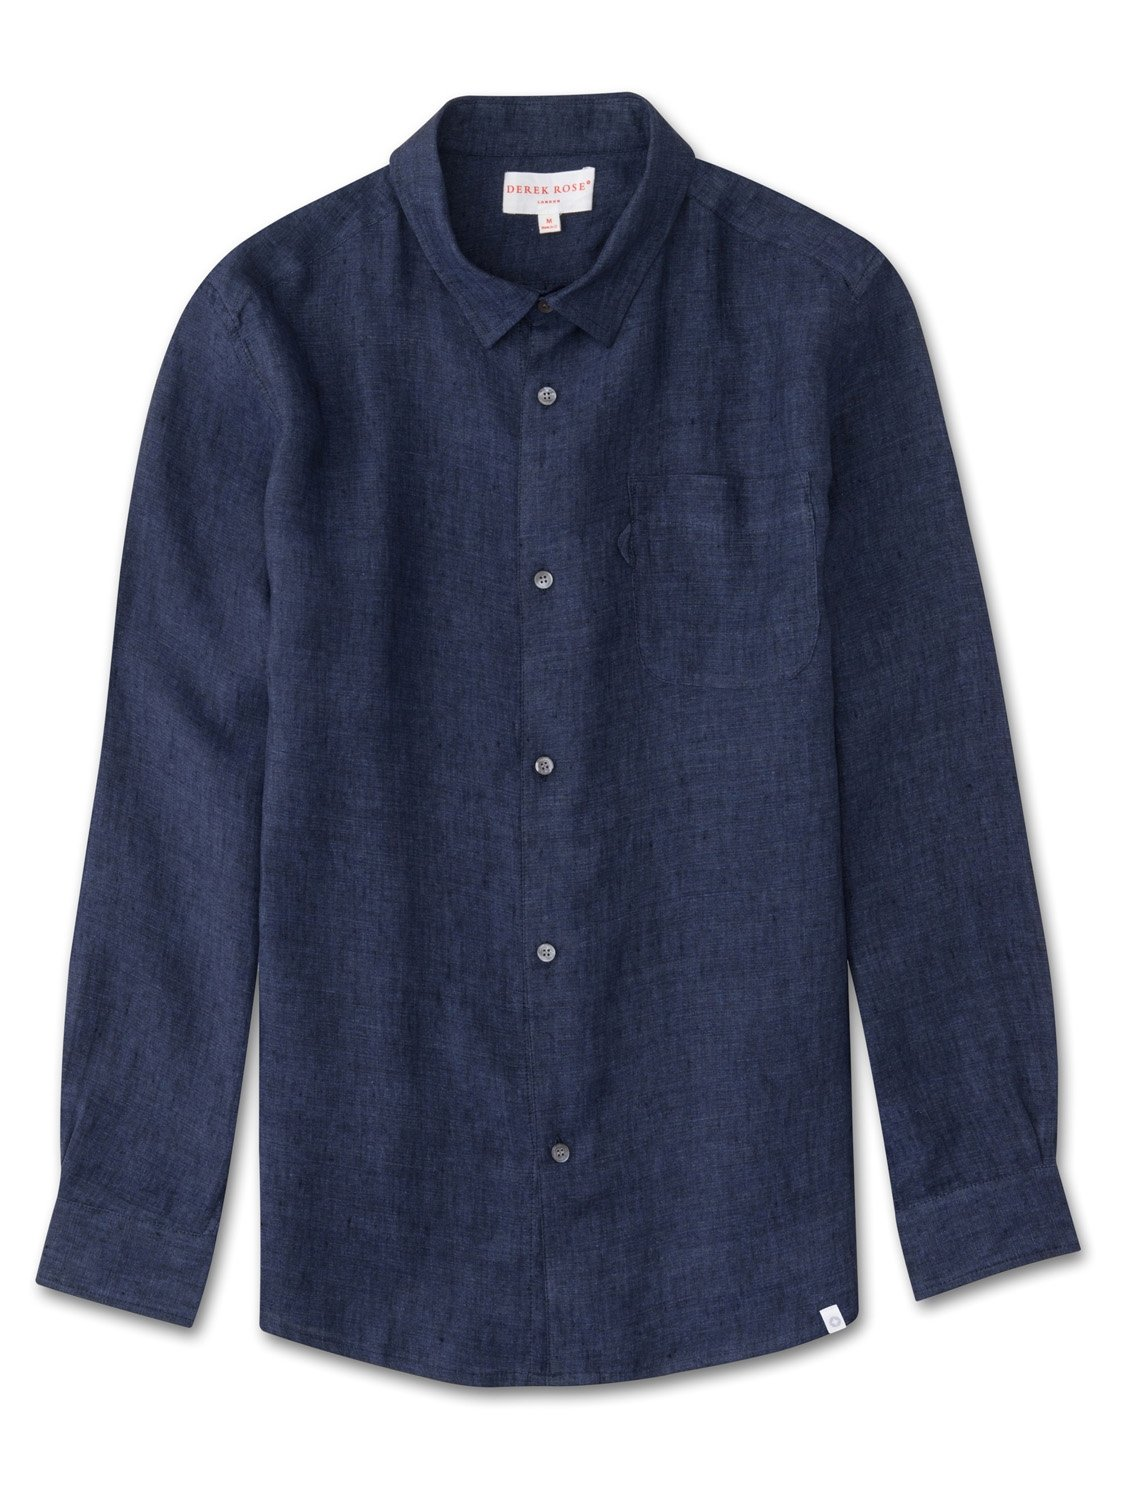 Men's Linen Shirt Monaco Pure Linen Navy